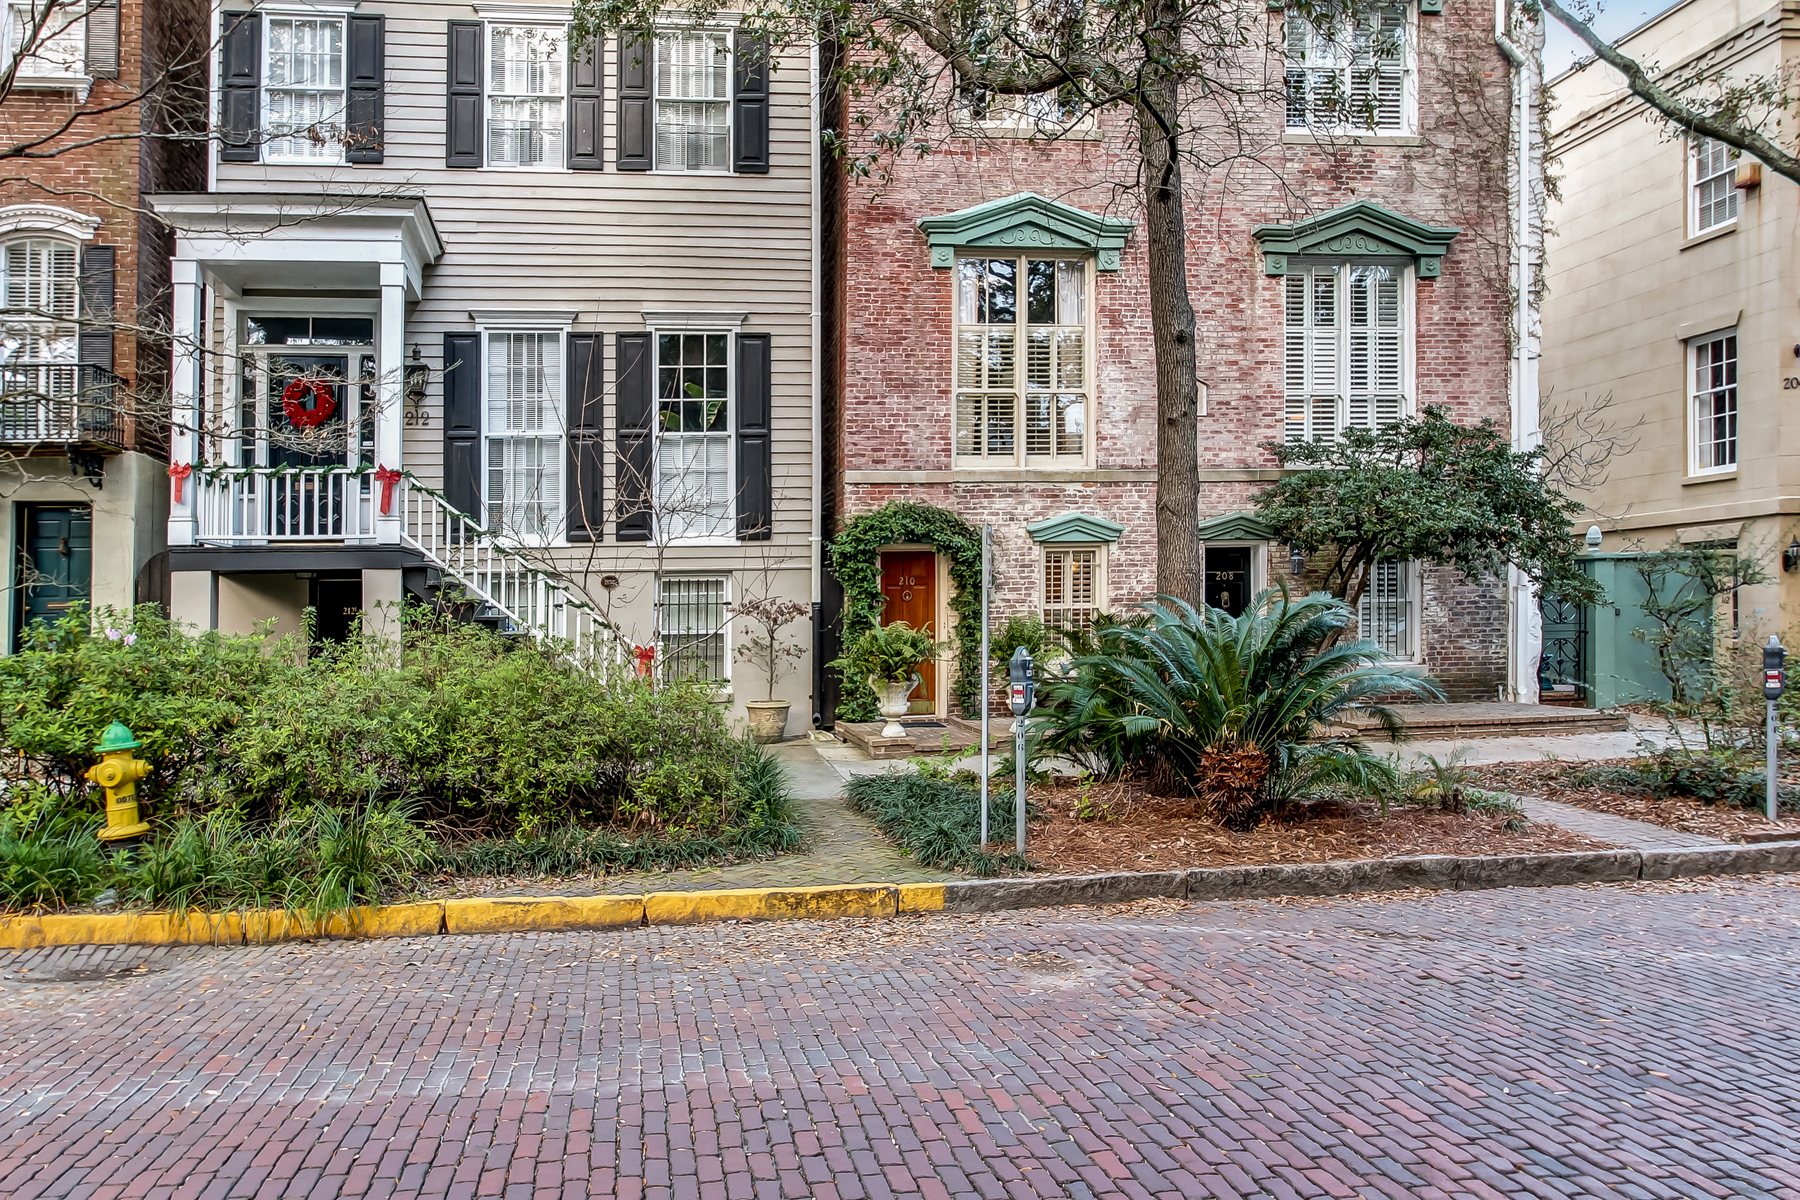 Townhouse for Sale at 210 W Jones Street Savannah, Georgia, 31401 United States